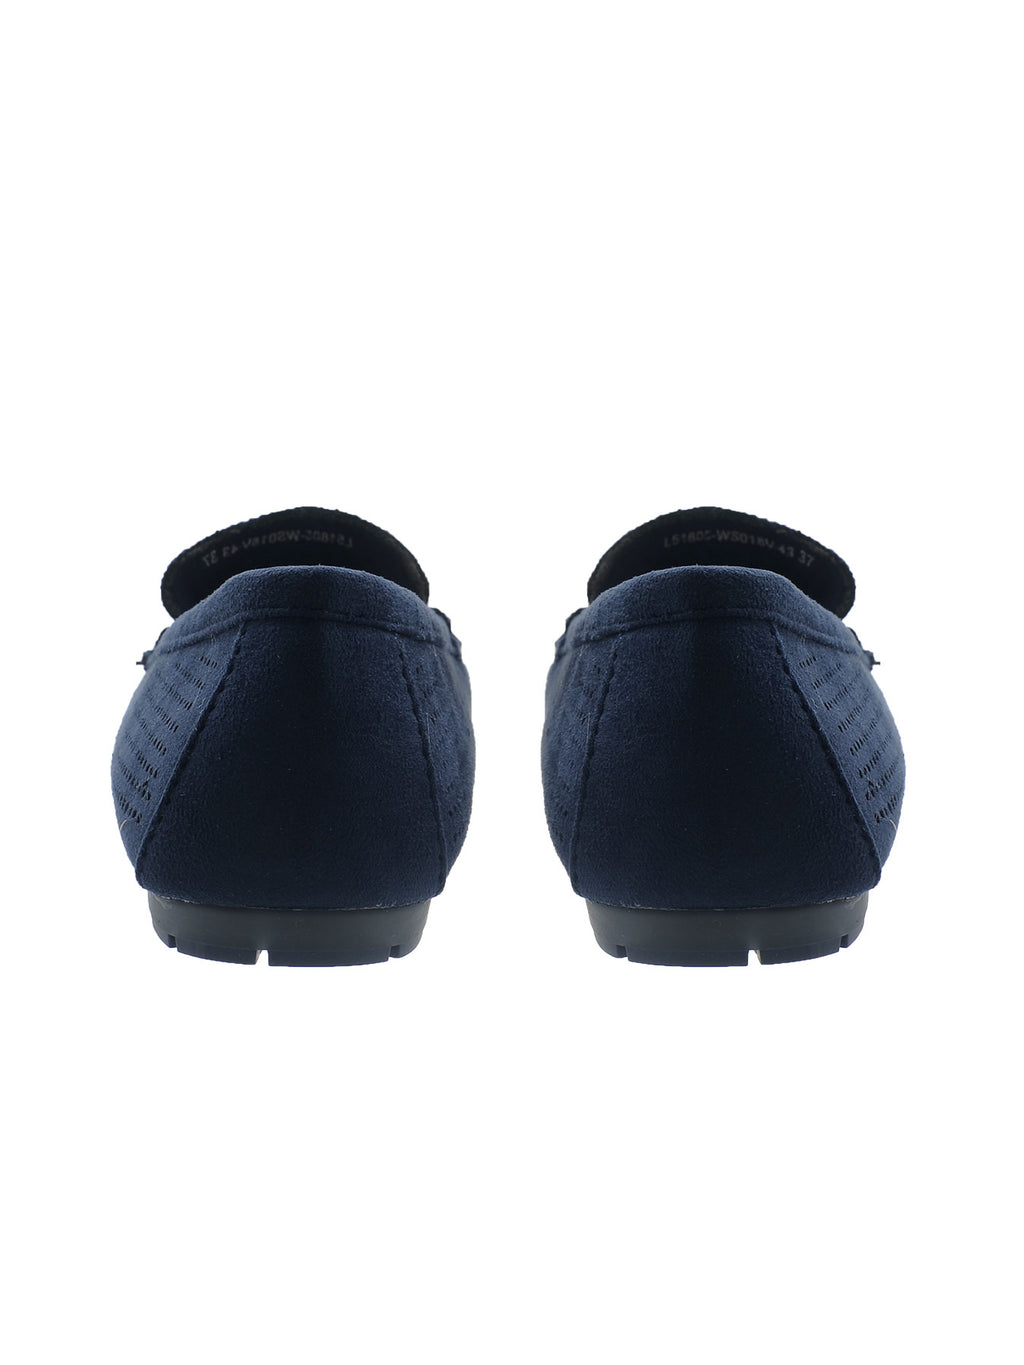 Larrie Navy Comfortable Moccasin Style Flats